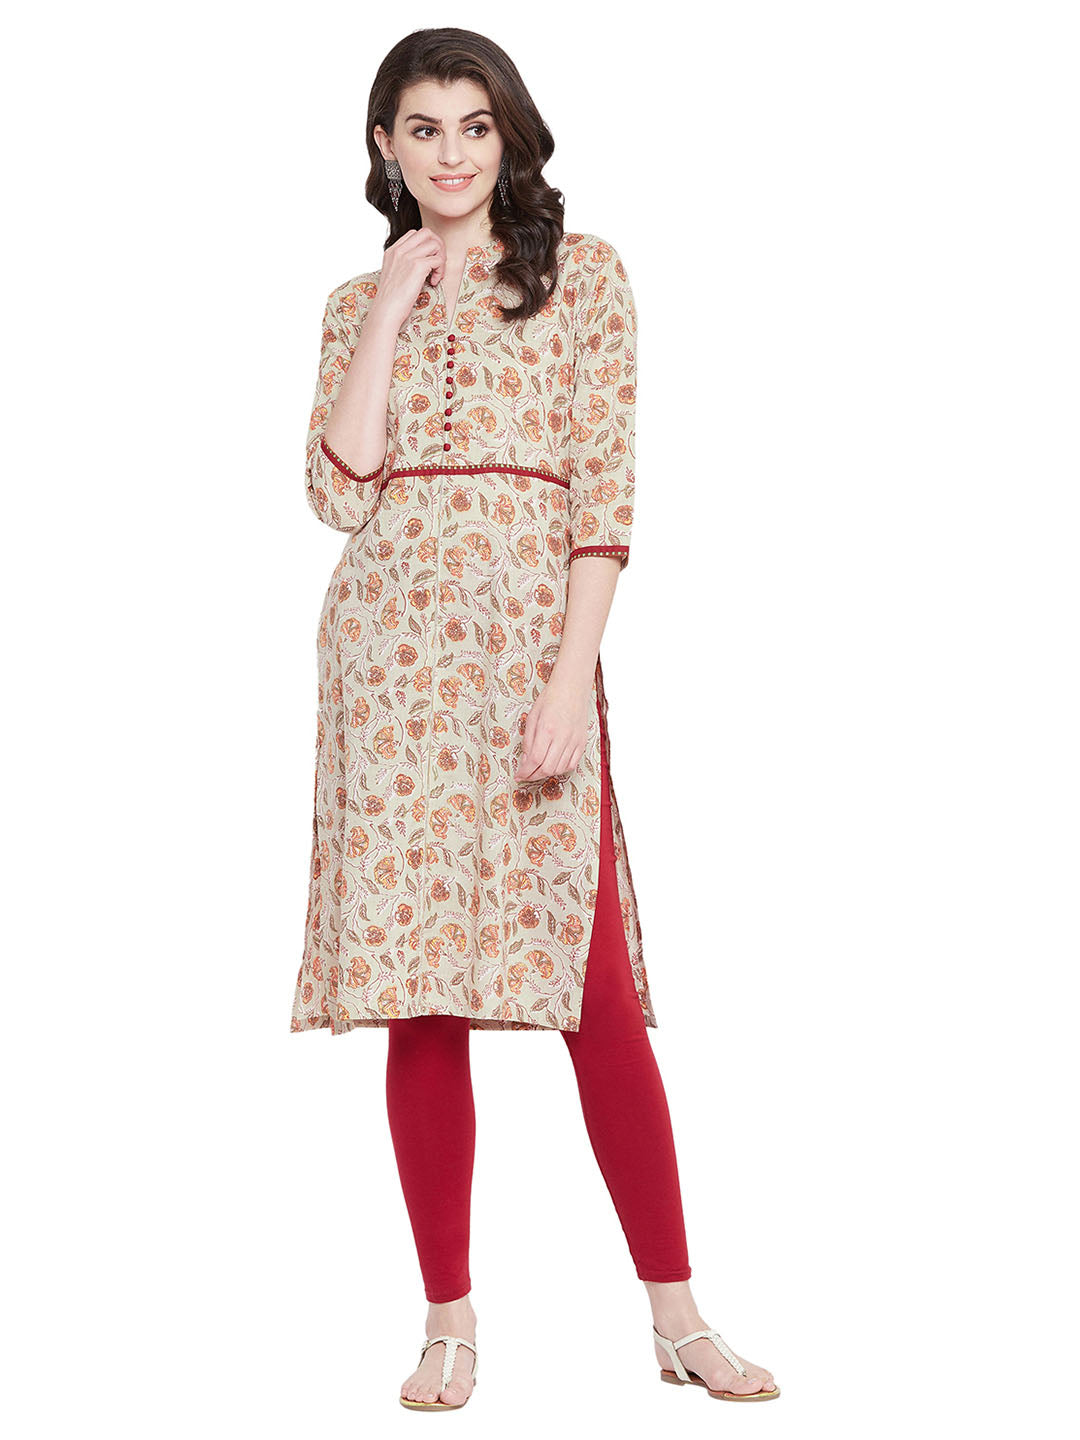 MEESAN Pastel Green Floral Cotton Printed Kurti for Women